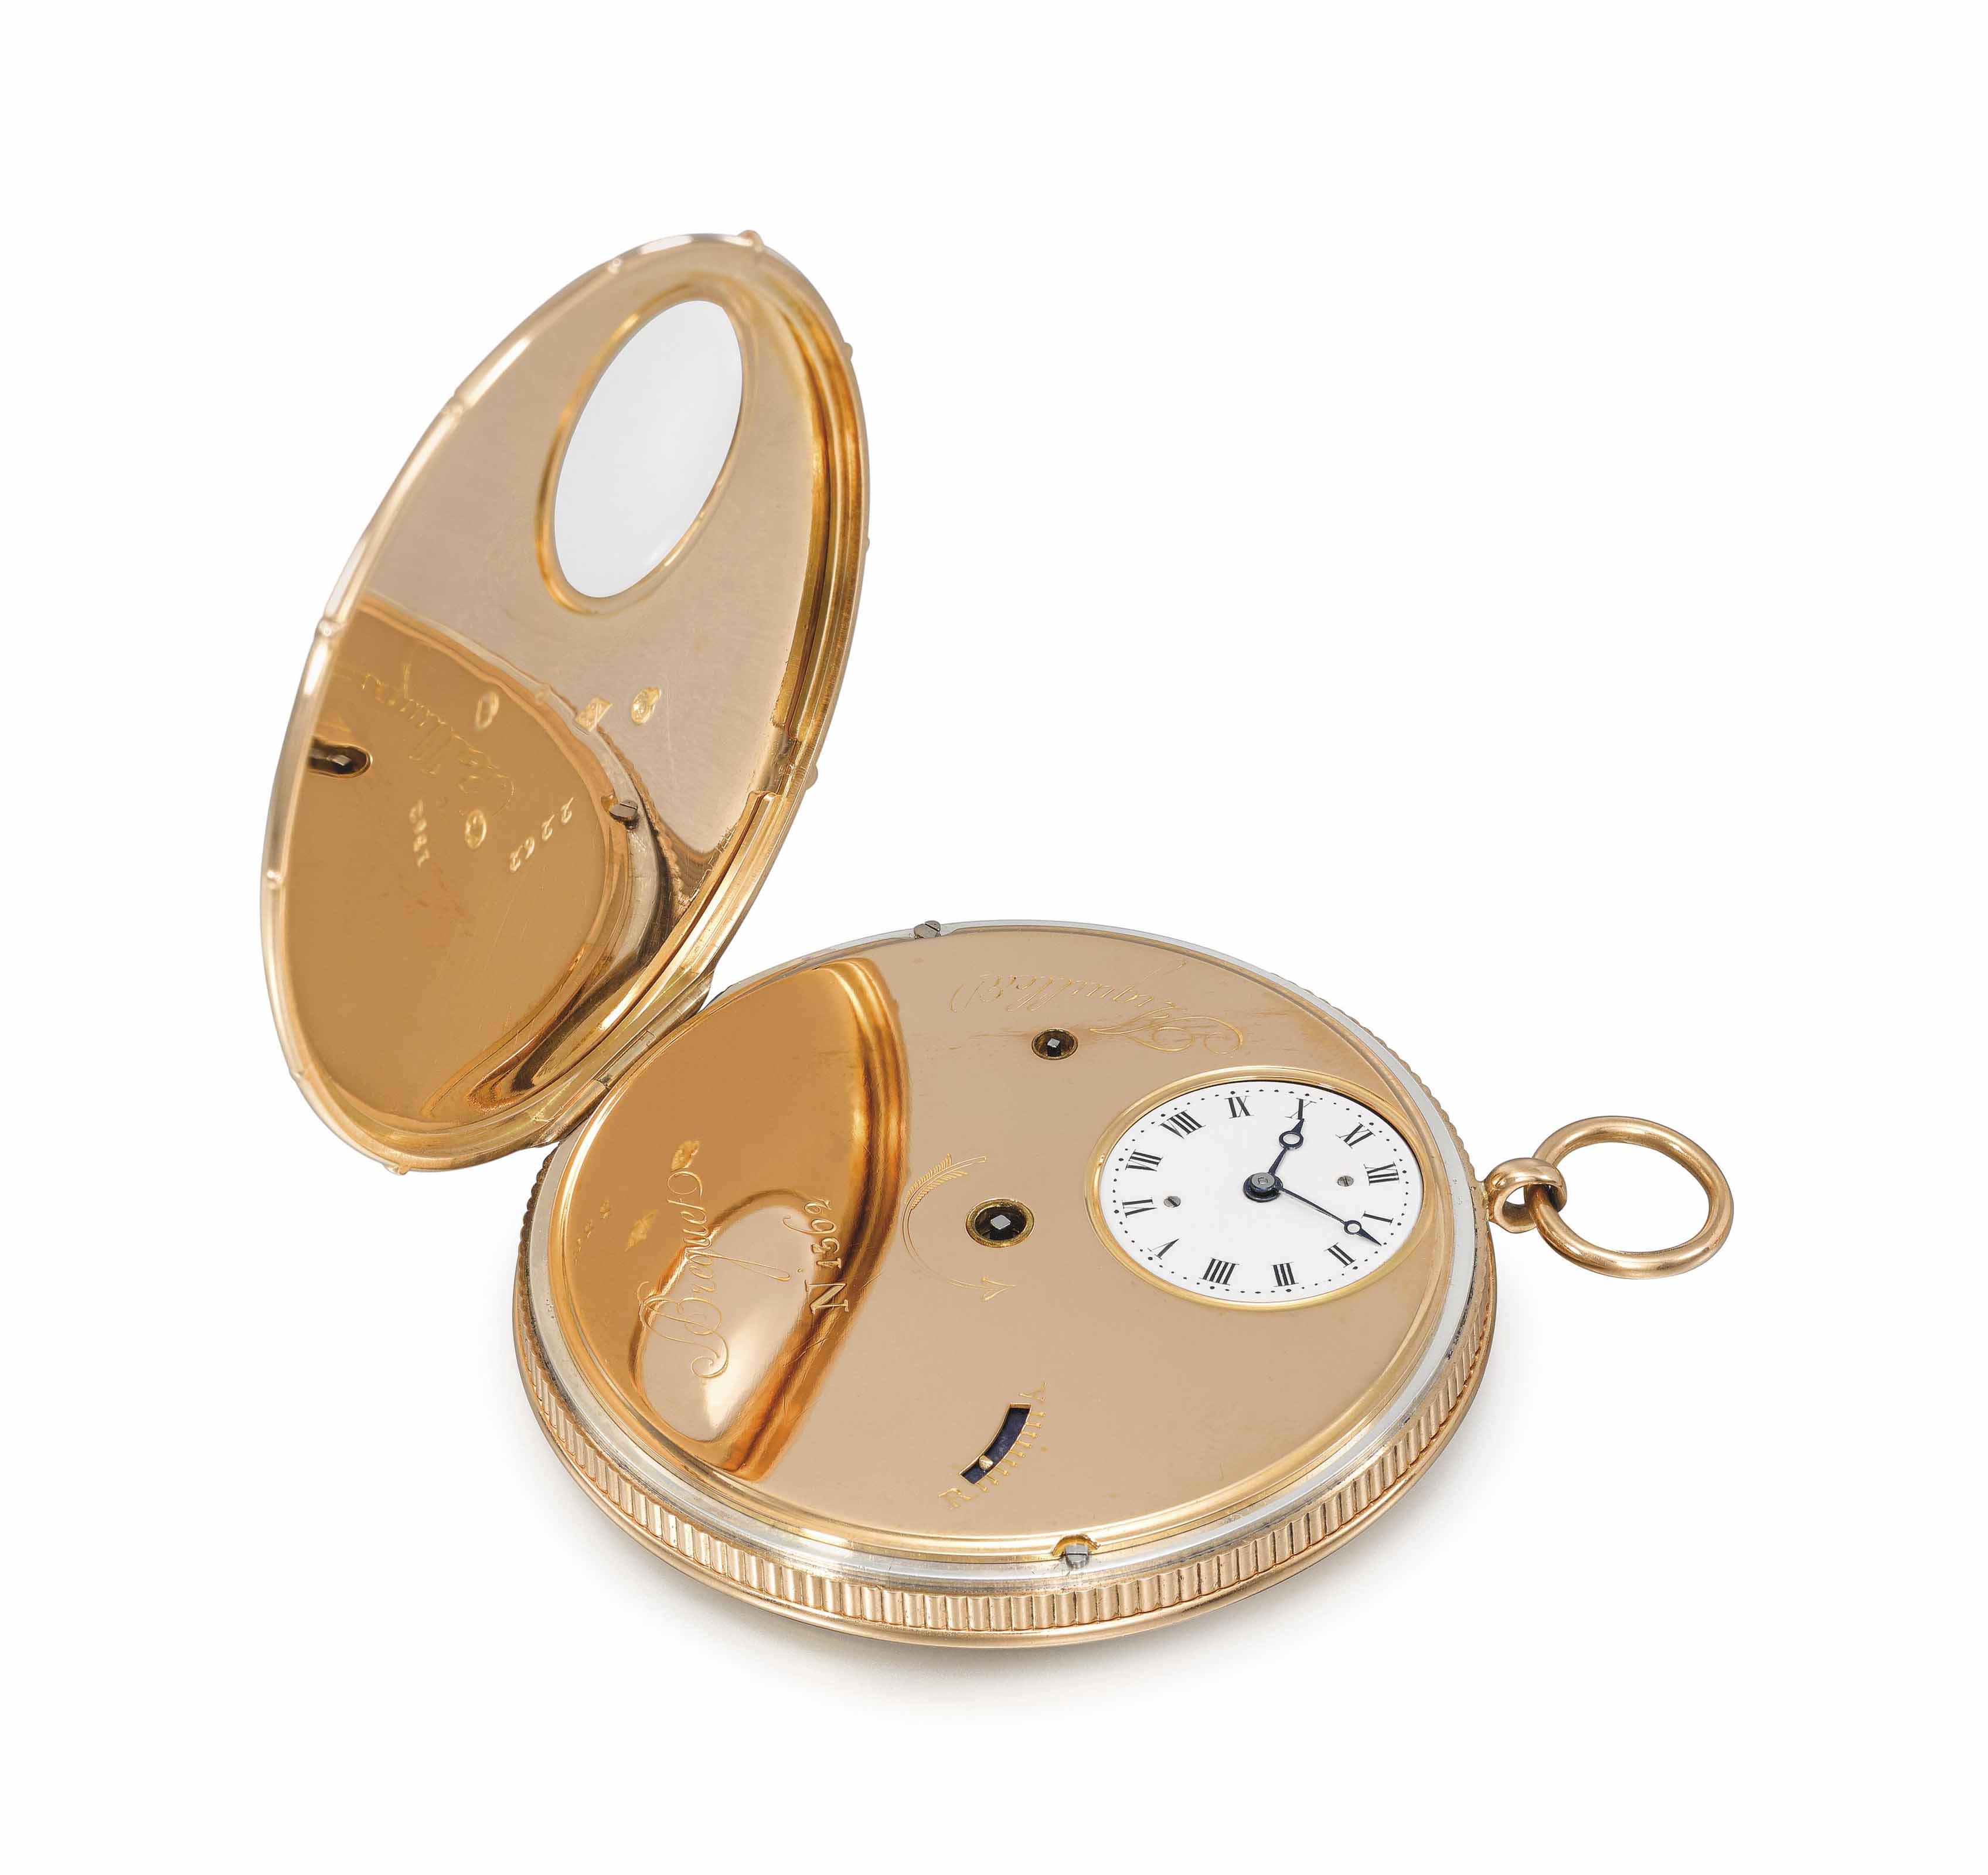 """Breguet, Paris, No. 1362 """"Souscription Moyenne à Tact"""". An extremely rare, large and slim 18K Gold à Tact Watch with Ruby Cylinder Escapement, in a Breguet Gold-Tooled Red Morocco Fitted Box No. 1362"""